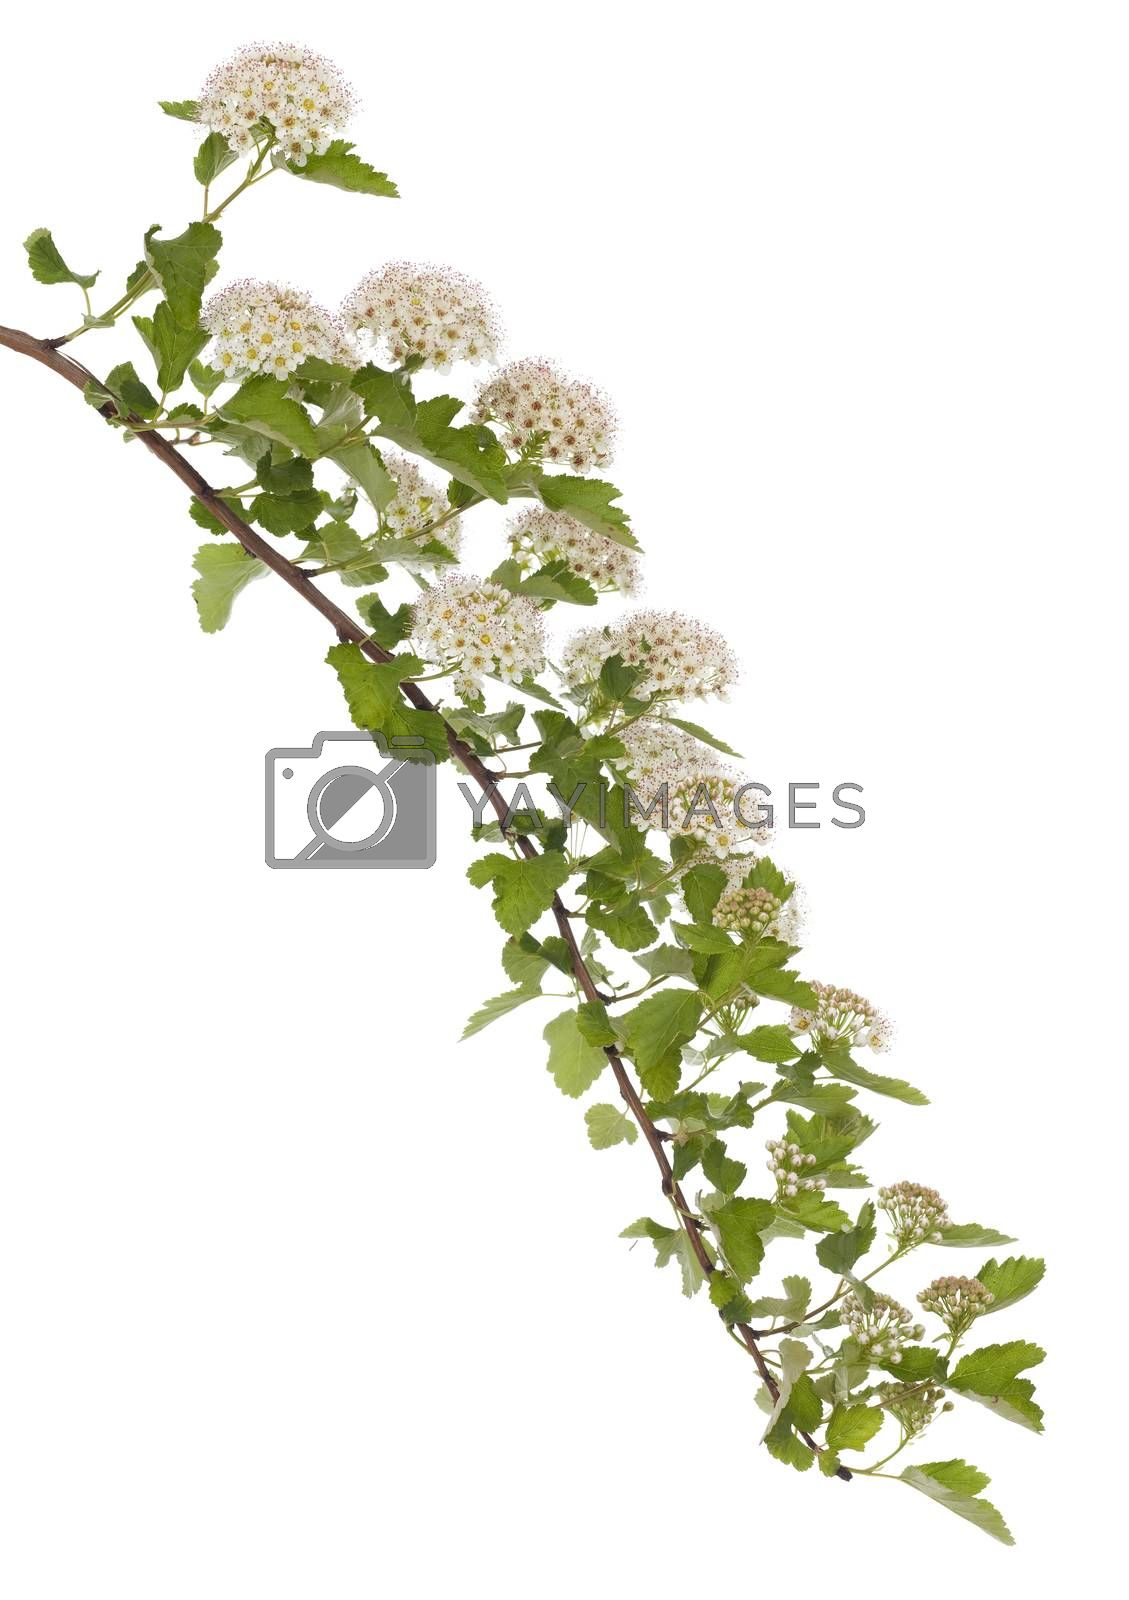 blooming branch (Physocarpus opulifolius) on white background